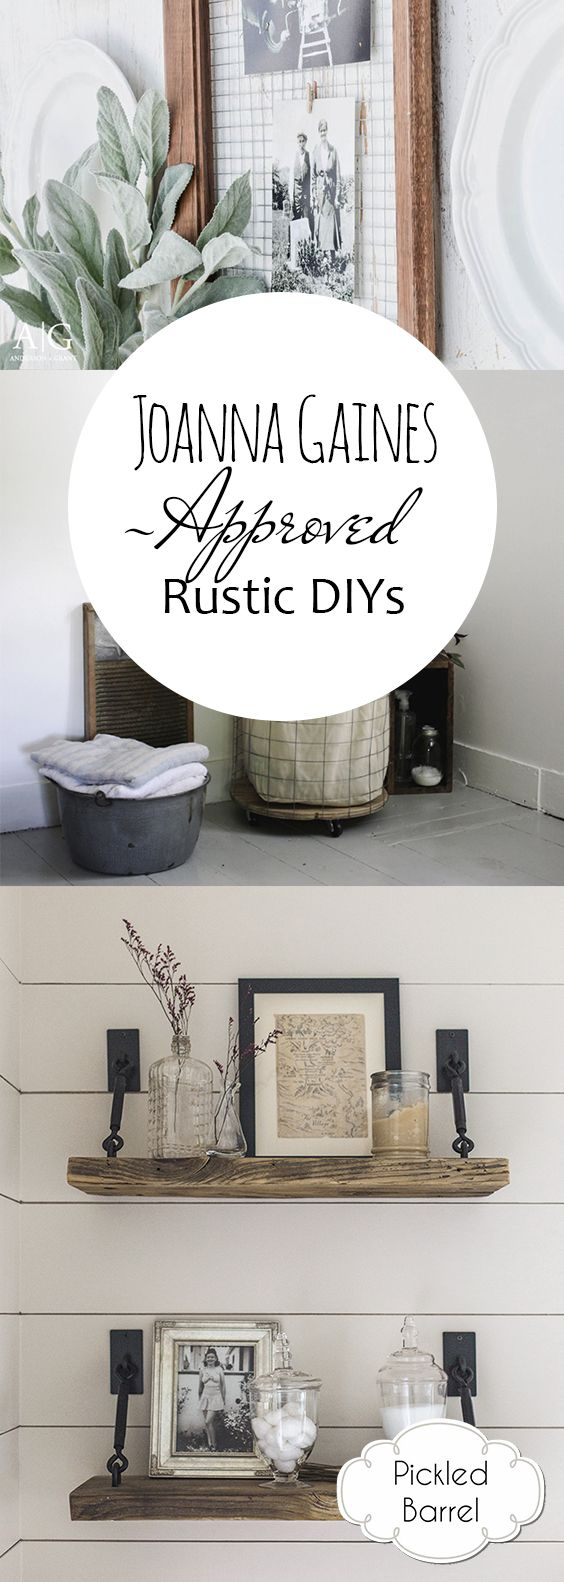 Joanna Gaines-Approved Rustic DIYs